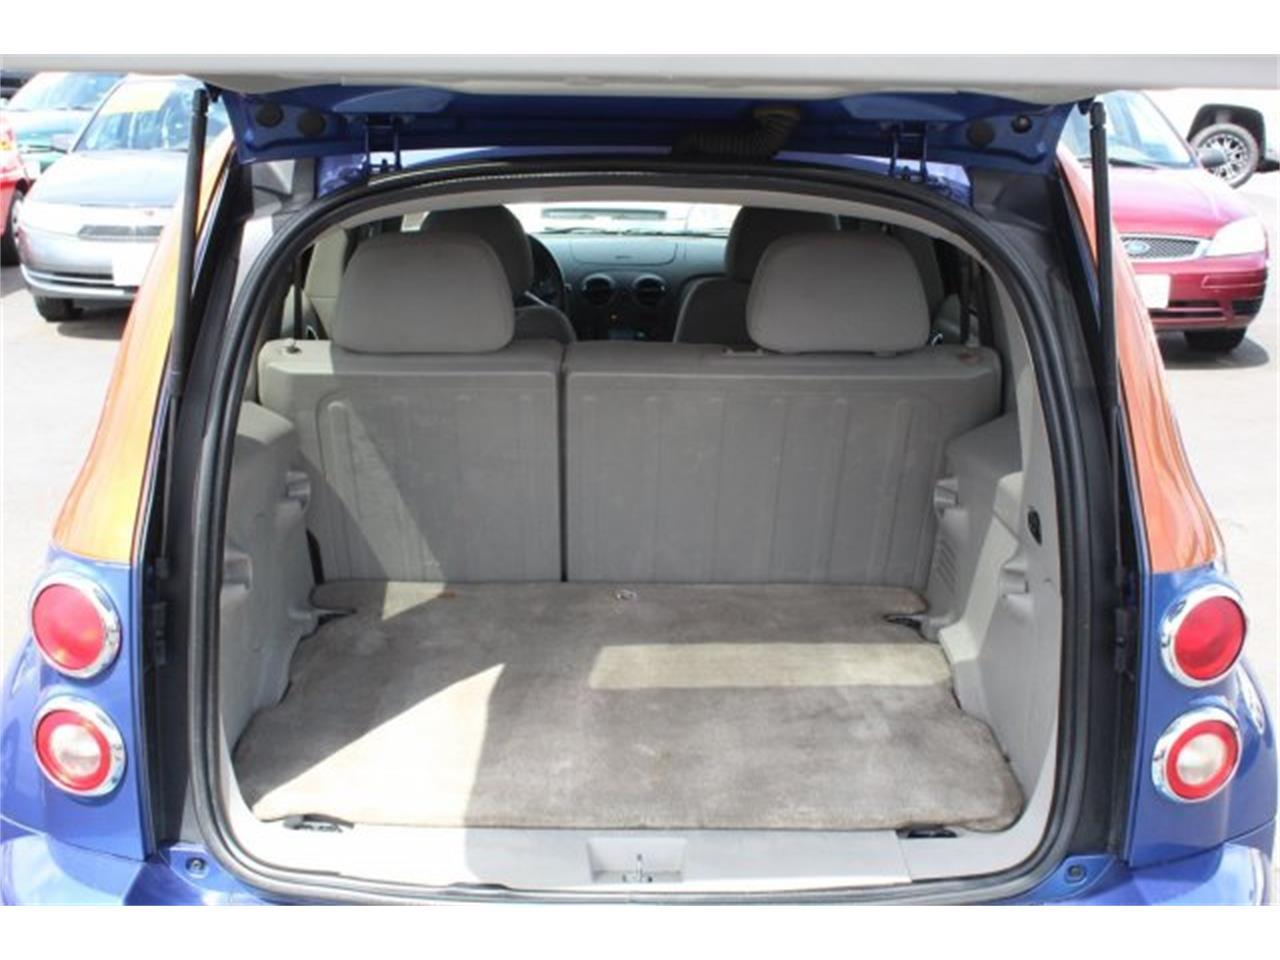 Large Picture of 2006 Chevrolet HHR located in Washington - $6,995.00 Offered by Carson Cars - L42N